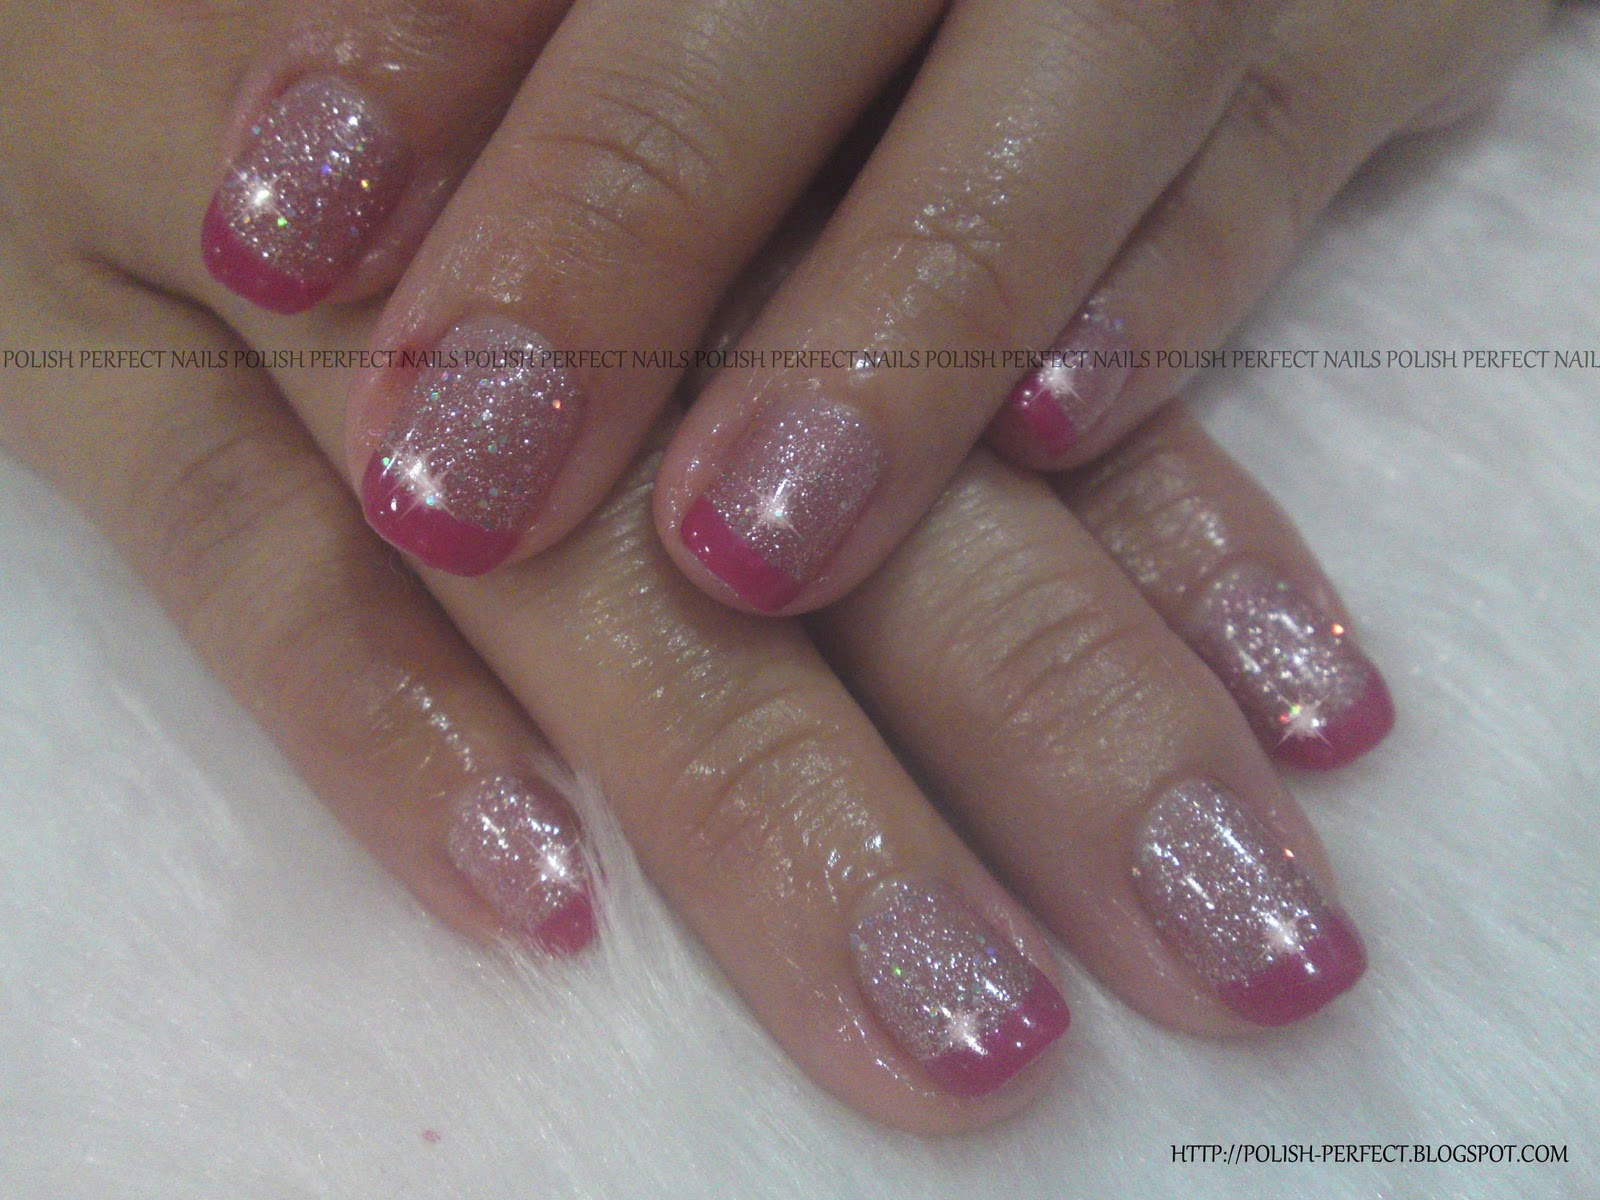 Polish Perfect Nails: March 2011